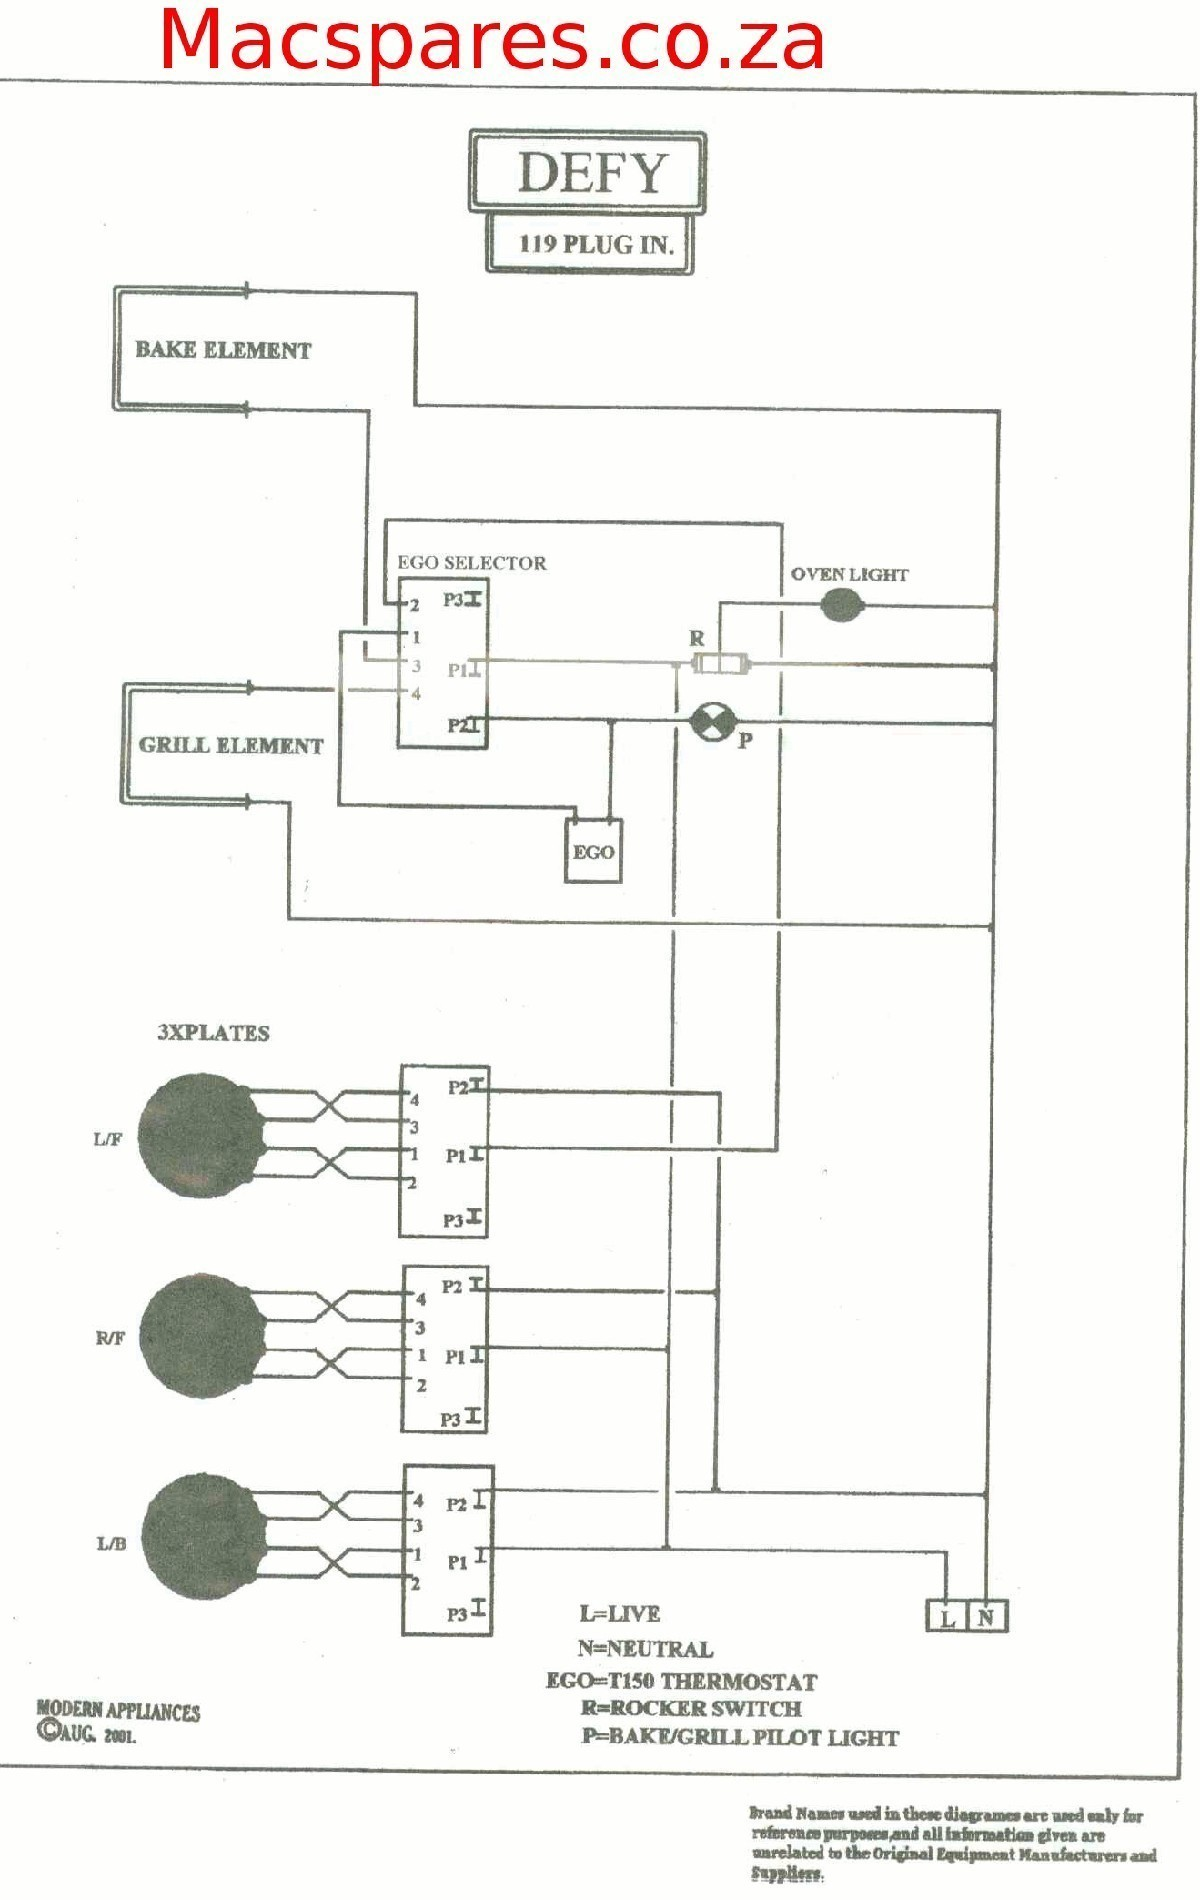 Wiring Diagram for Electric Cooker New Wiring Diagram Electric Cooker Valid Wiring Diagram Electric Oven